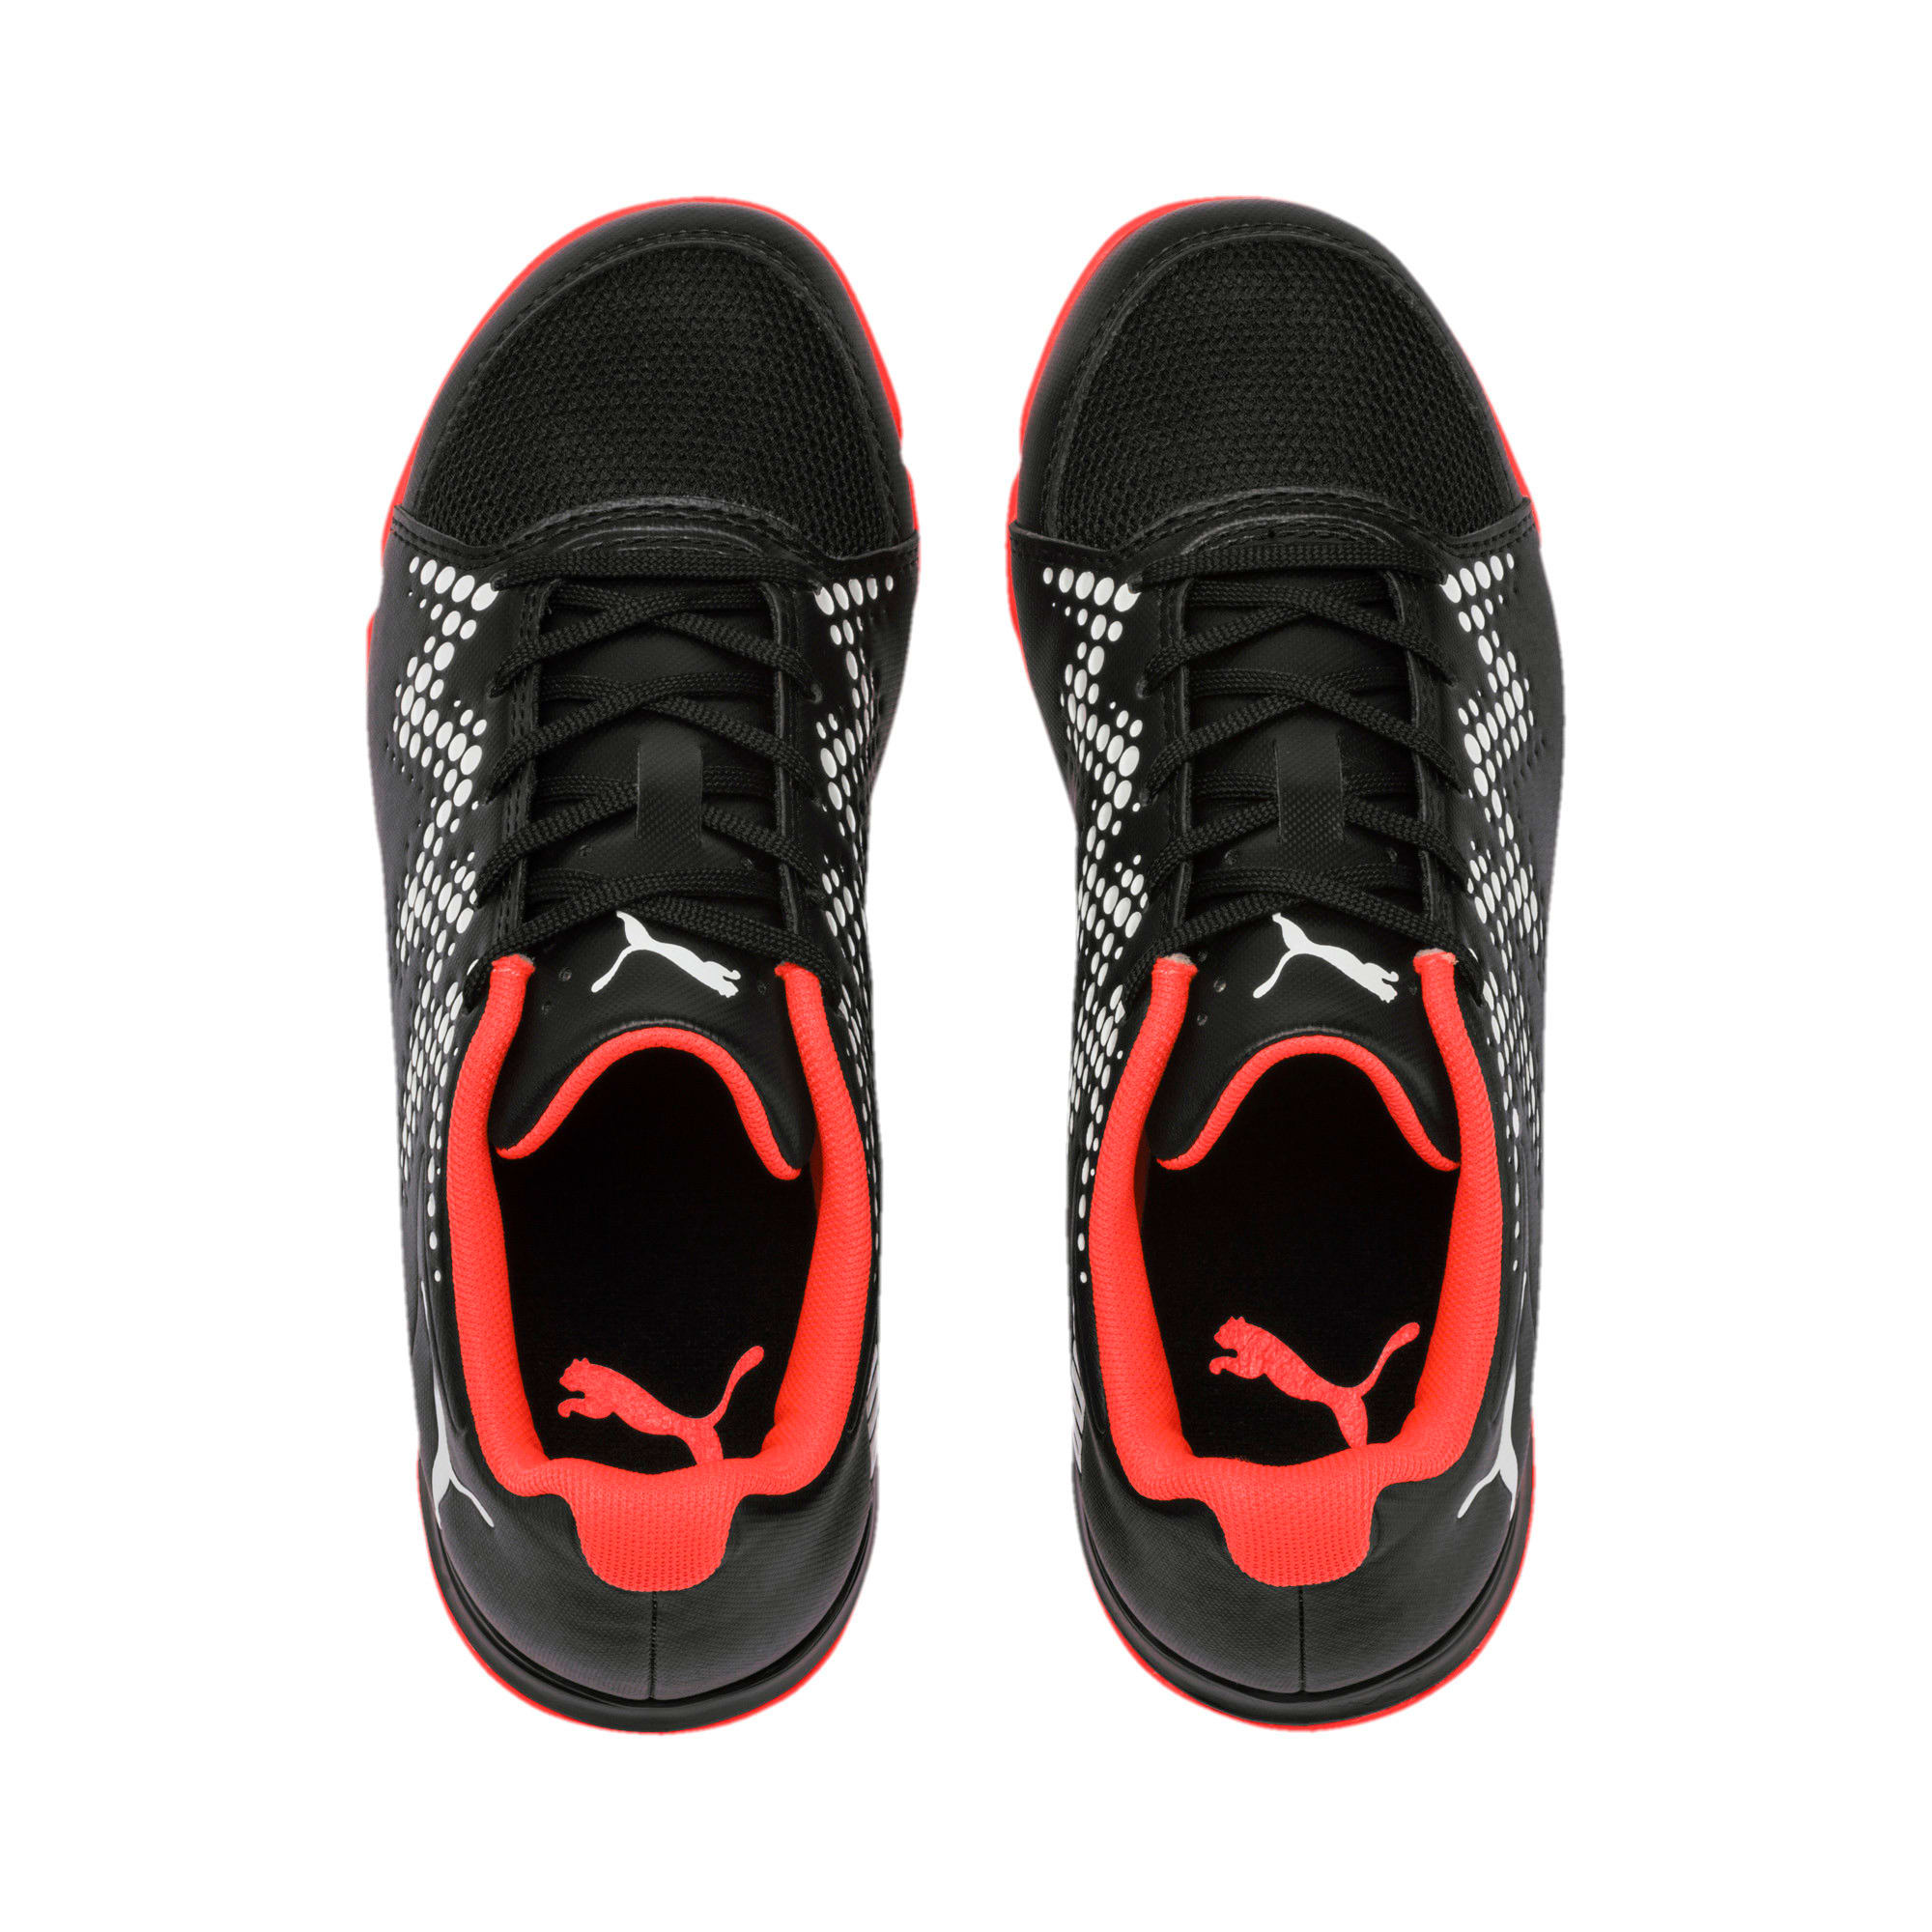 Thumbnail 6 of Sharp XT 2 Youth Trainers, Black-Puma White-Nrgy Red, medium-IND